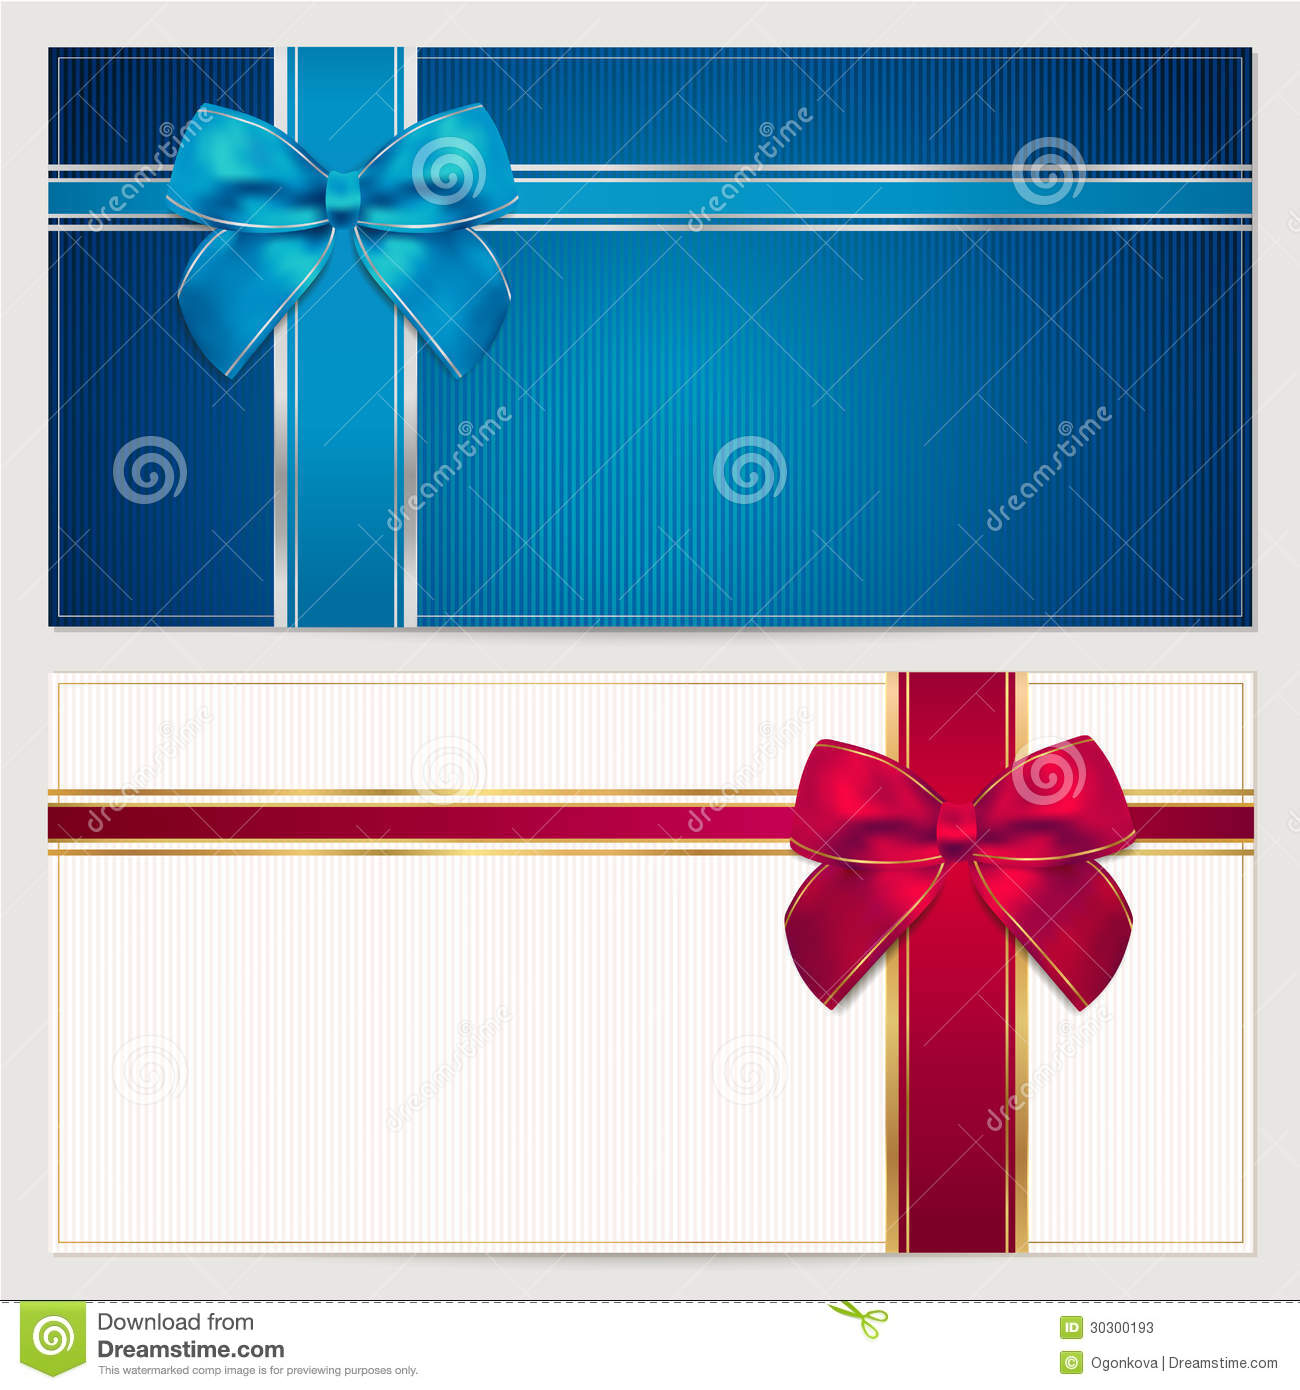 Gift card template with corrugated texture, border and blue and red ...